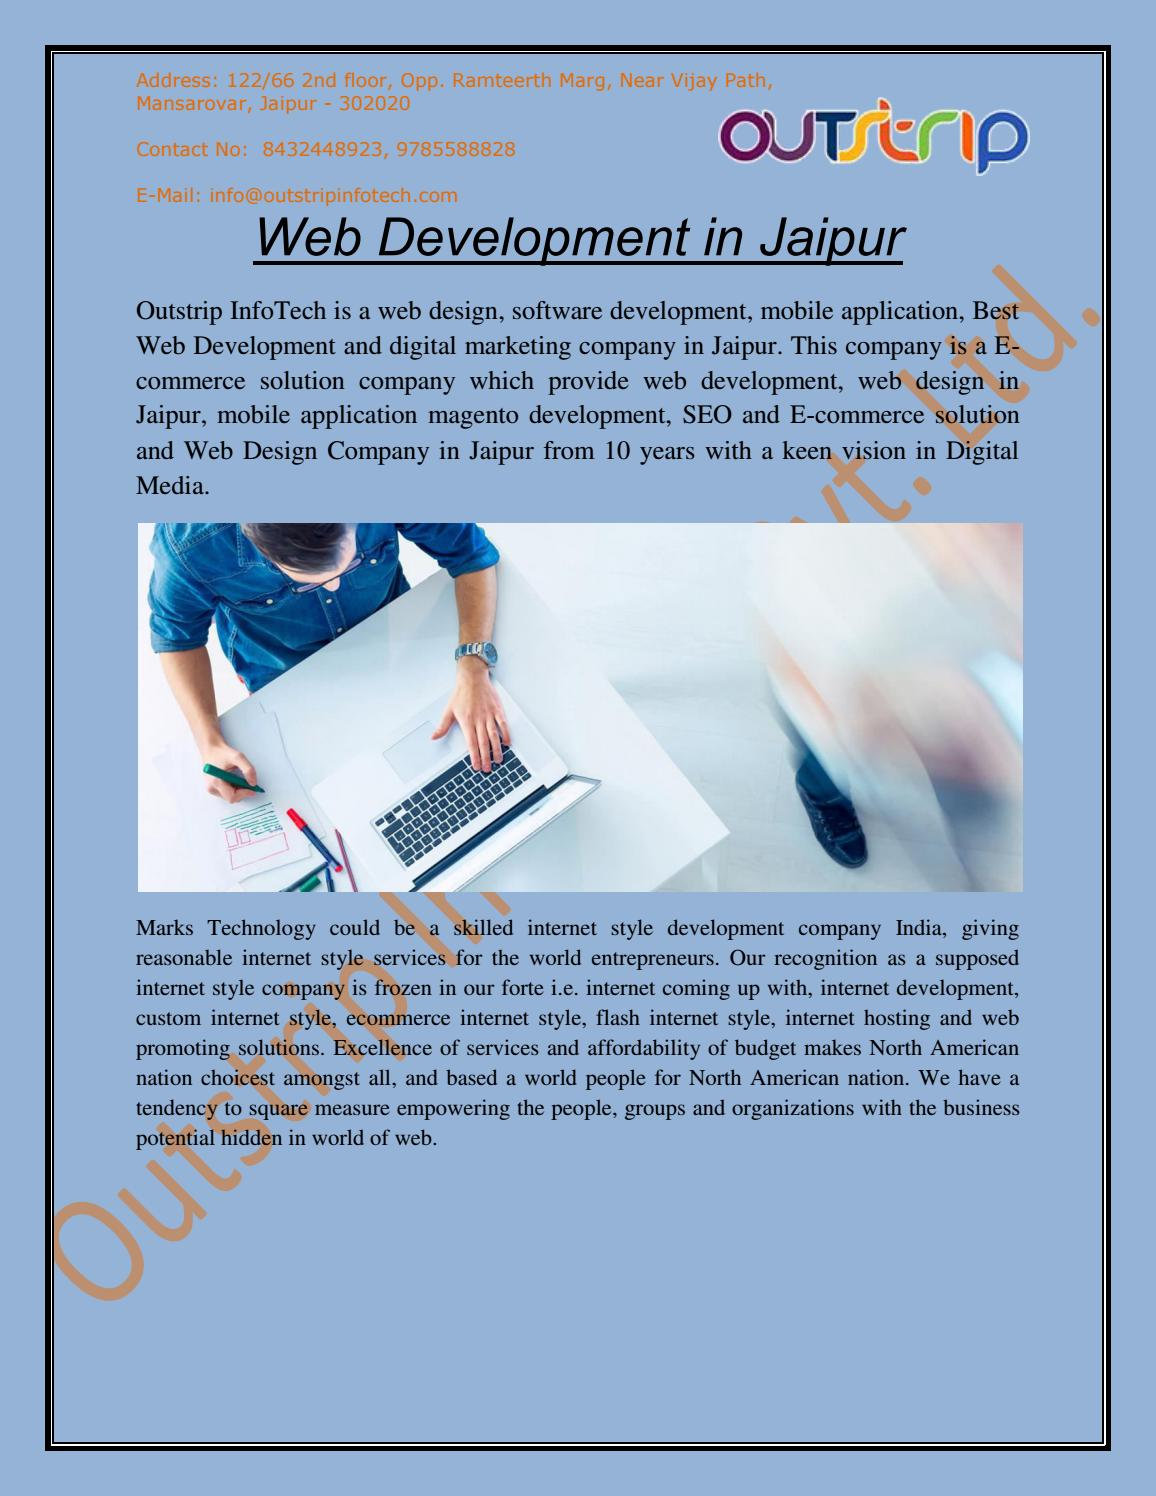 Best Web Development Company in Jaipur, India, and USA by